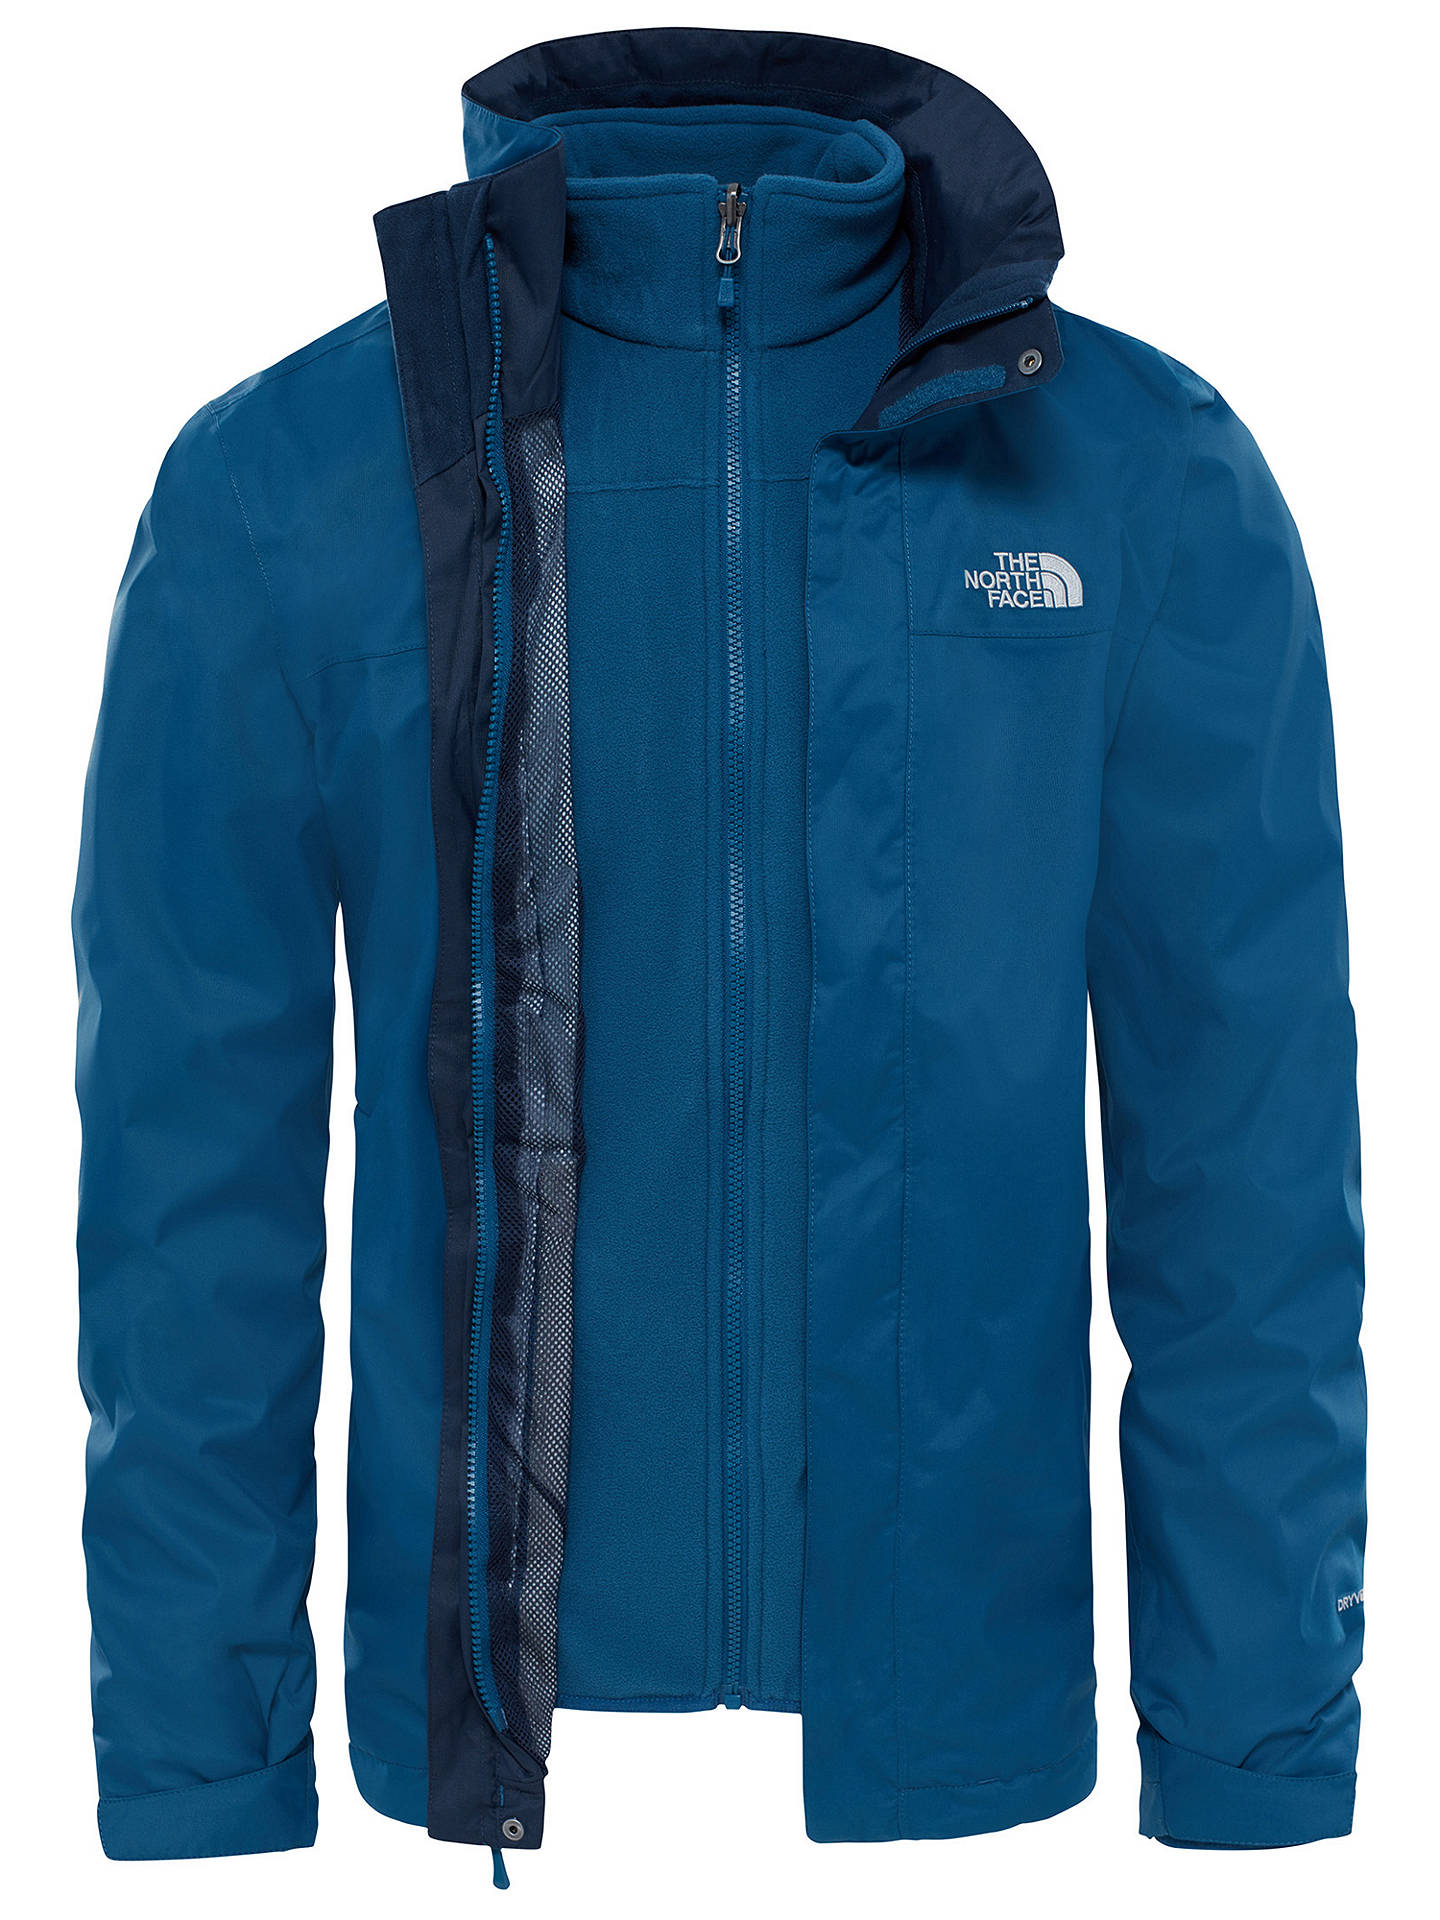 367b02cf0 The North Face Evolve II Triclimate 3-in-1 Waterproof Men's Jacket ...